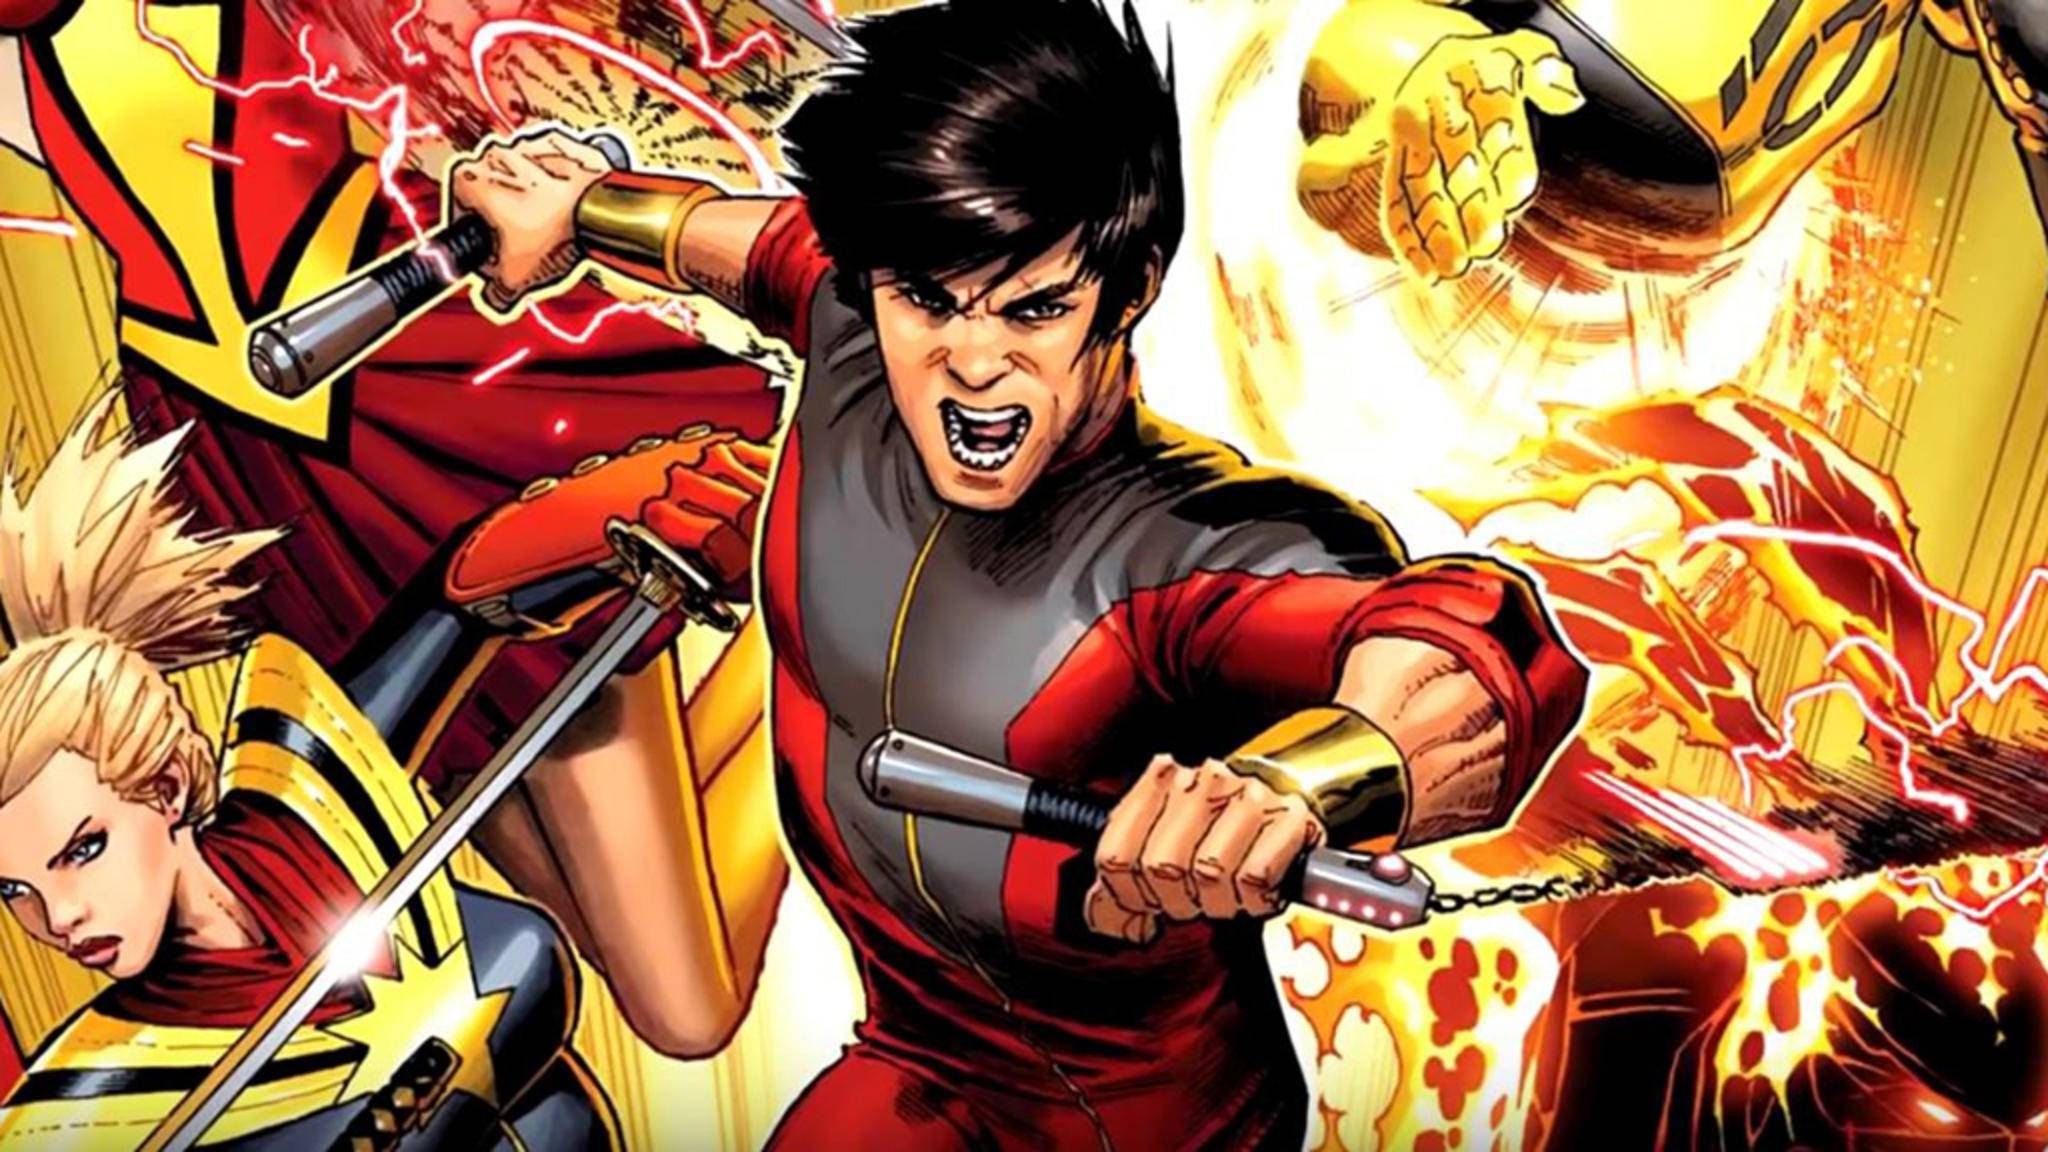 Marvels Martial-Arts-Superheld Shang-Chi erobert bald die Leinwand.